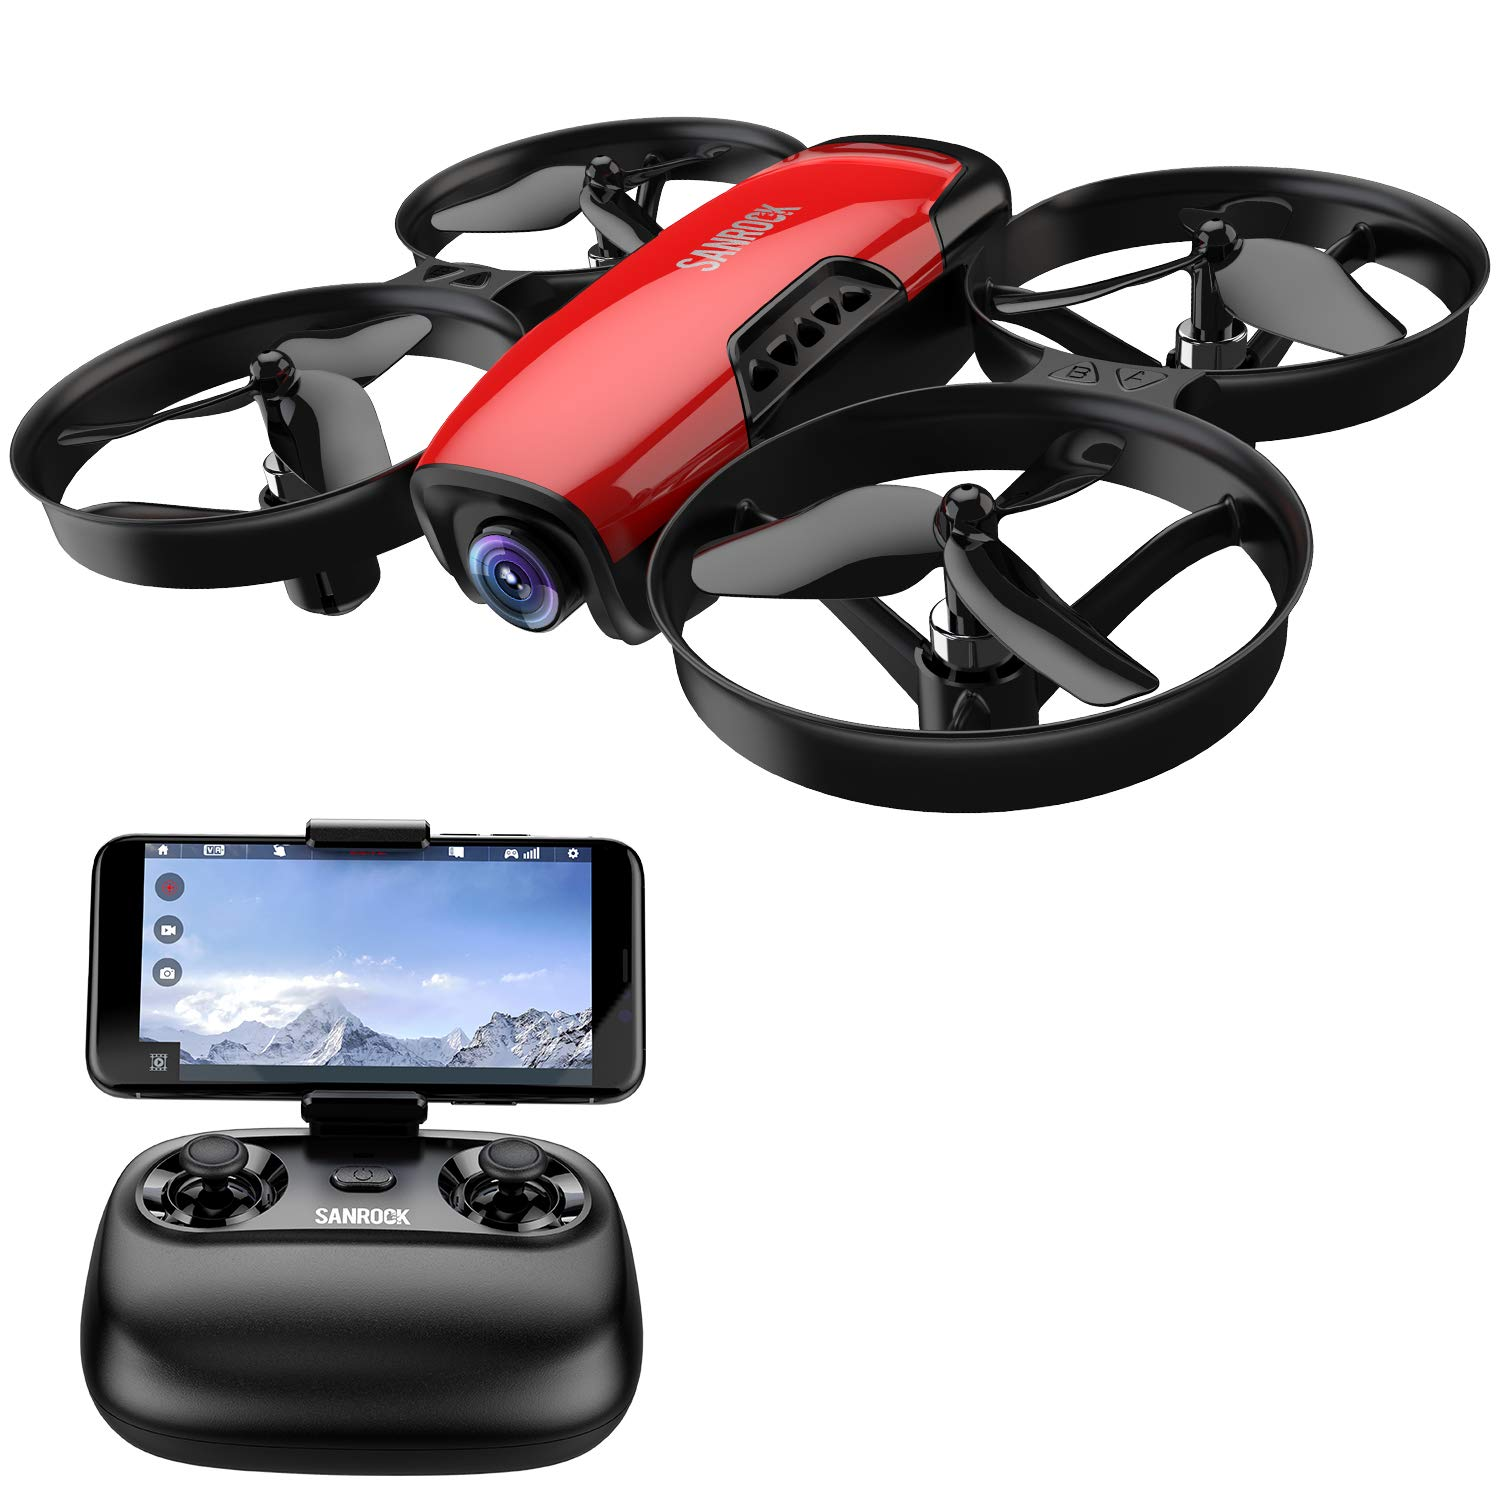 Drone for Kids with Camera, SANROCK U61W FPV Wi-Fi Drone with Camera 720P HD, Intelligent Operation Altitude Hold and Headless Mode, One Button Take Off/Landing, Emergency Stop by SANROCK